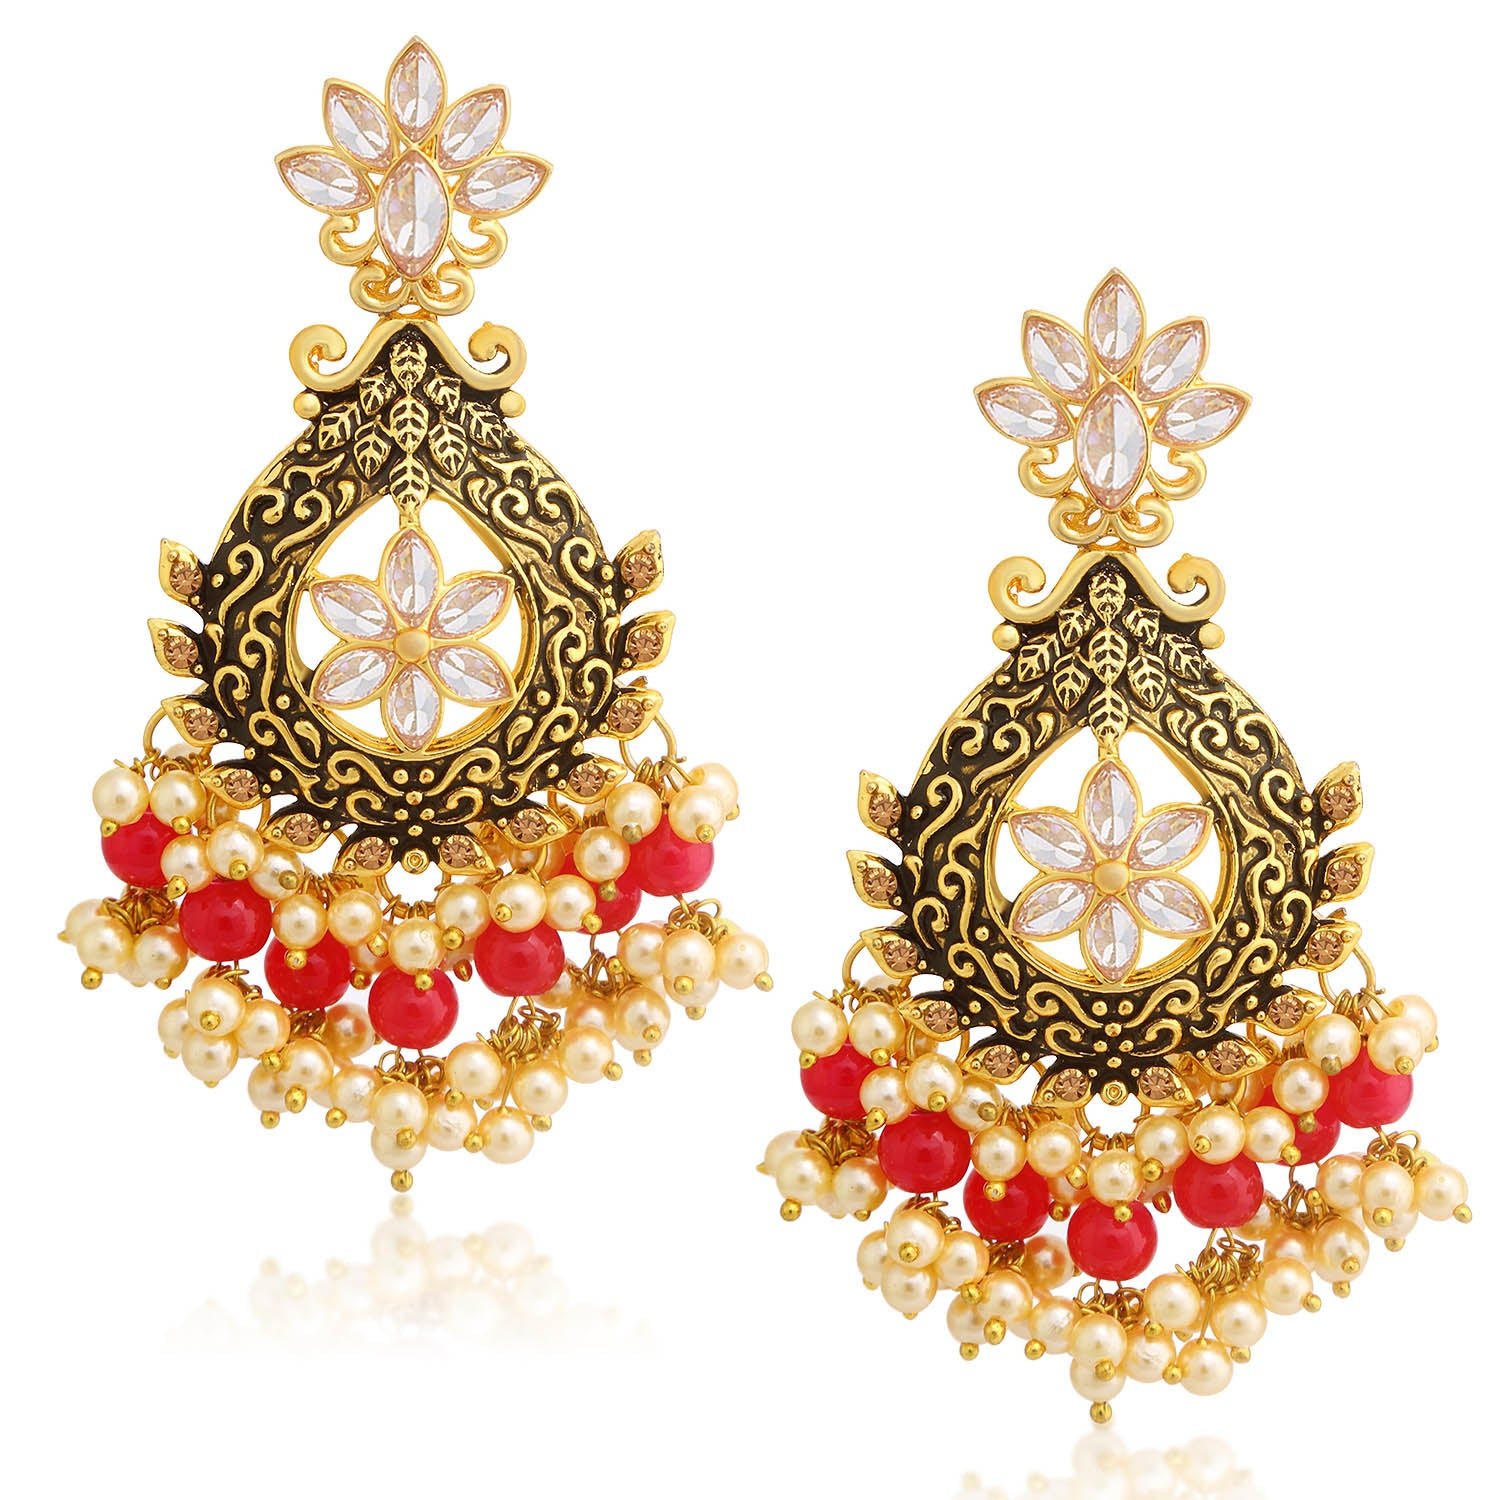 Sukkhi Glittery LCT Stone Gold Plated Floral Pearl Meenakari Chandelier Earring For Women-SUKKHI1-Earring